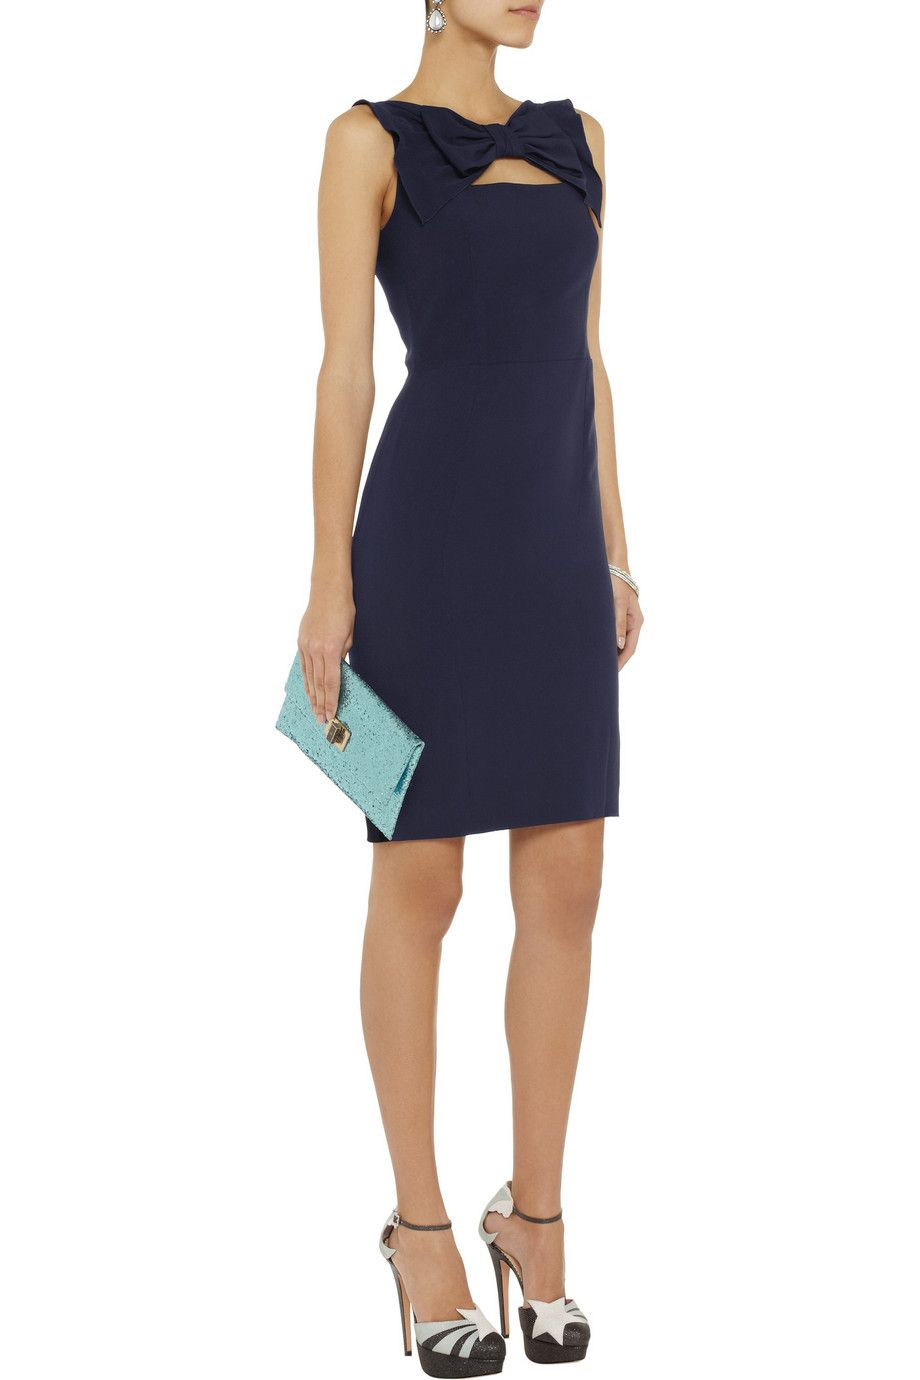 Moschino Cheap and Chic Bow-front crepe dress - 50% Off Now at THE OUTNET